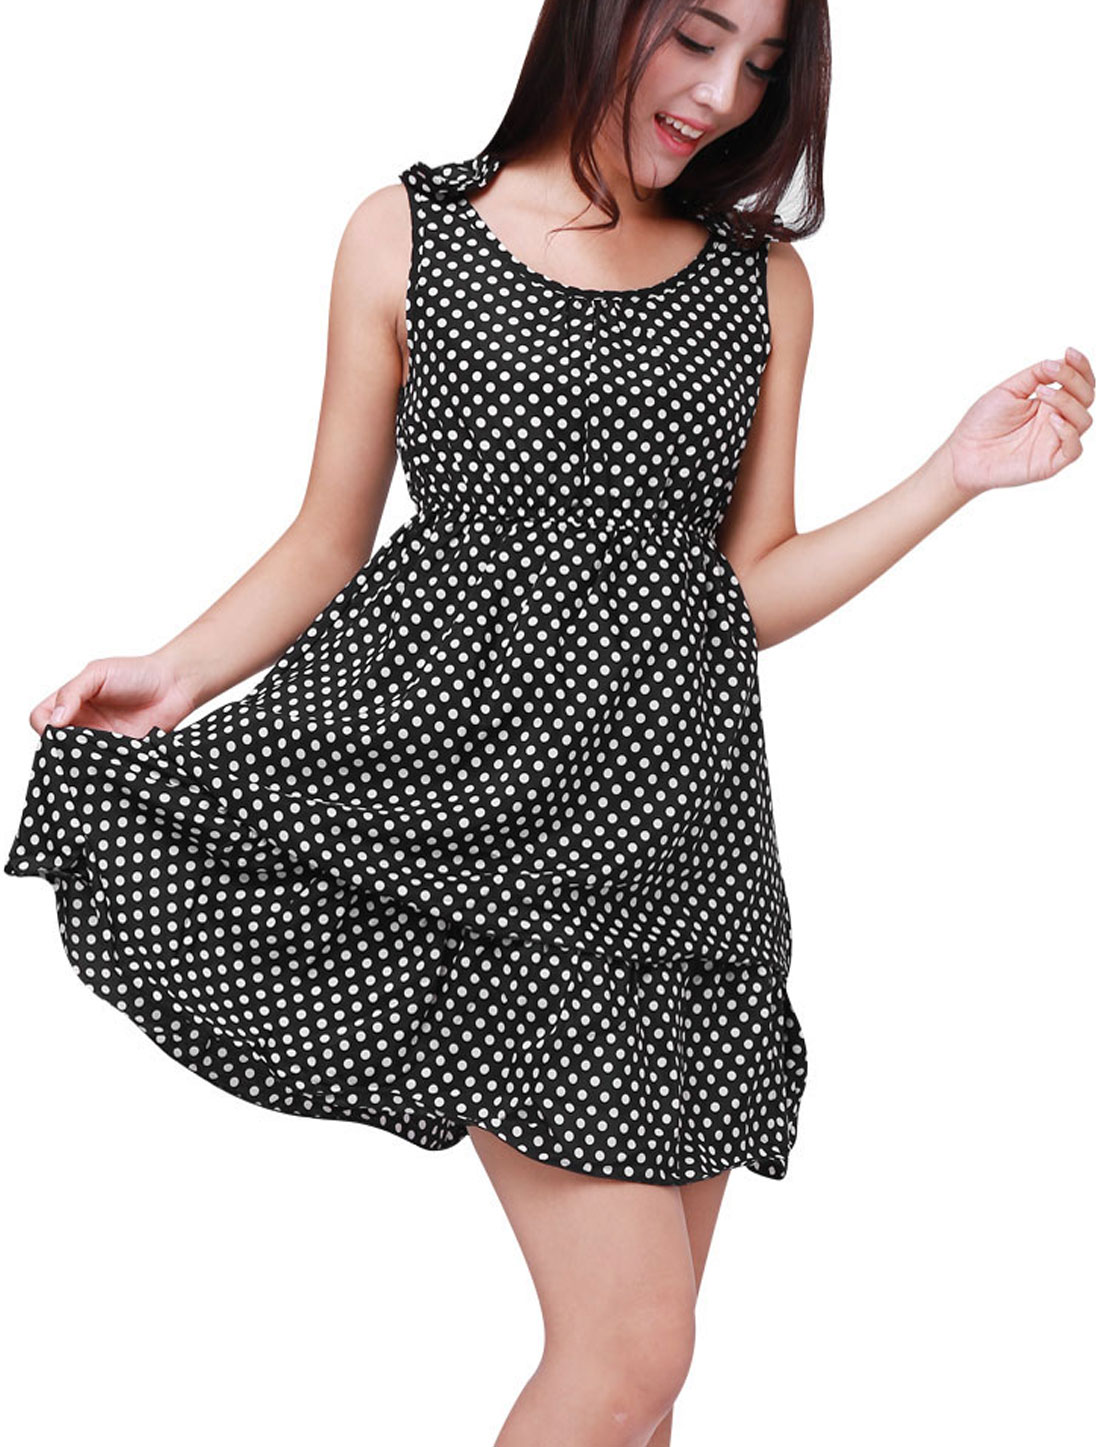 Women Chic Polka Dots Pattern Black Tiered Ruffled Mini Dress L